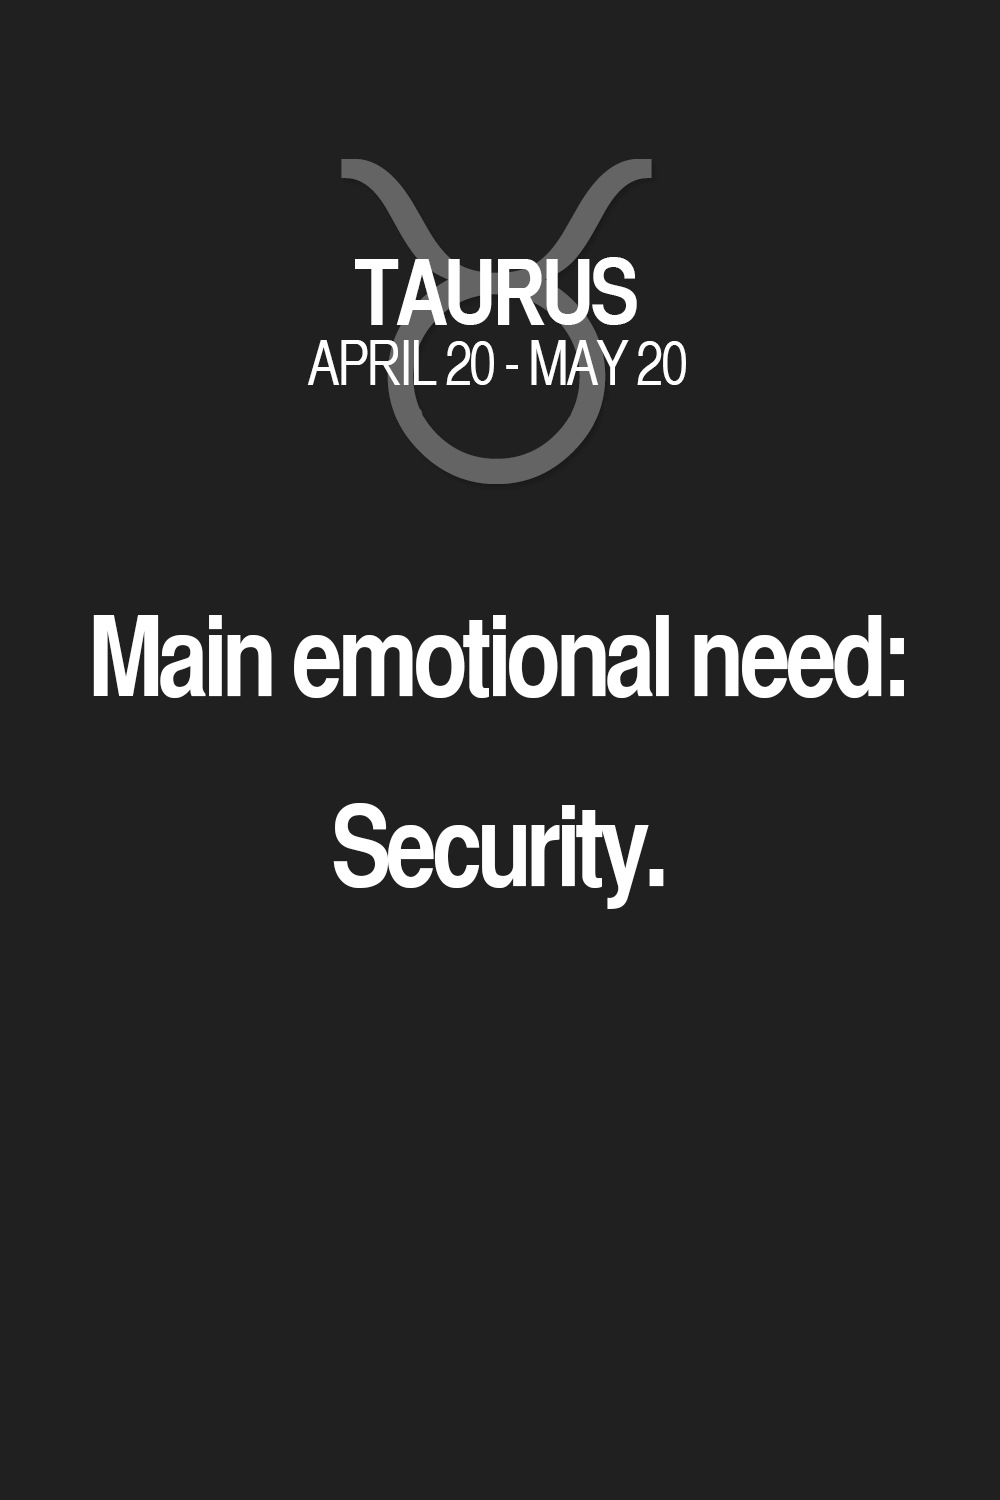 Security Quotes Main Emotional Need Securitytaurus  Taurus Quotes  Taurus